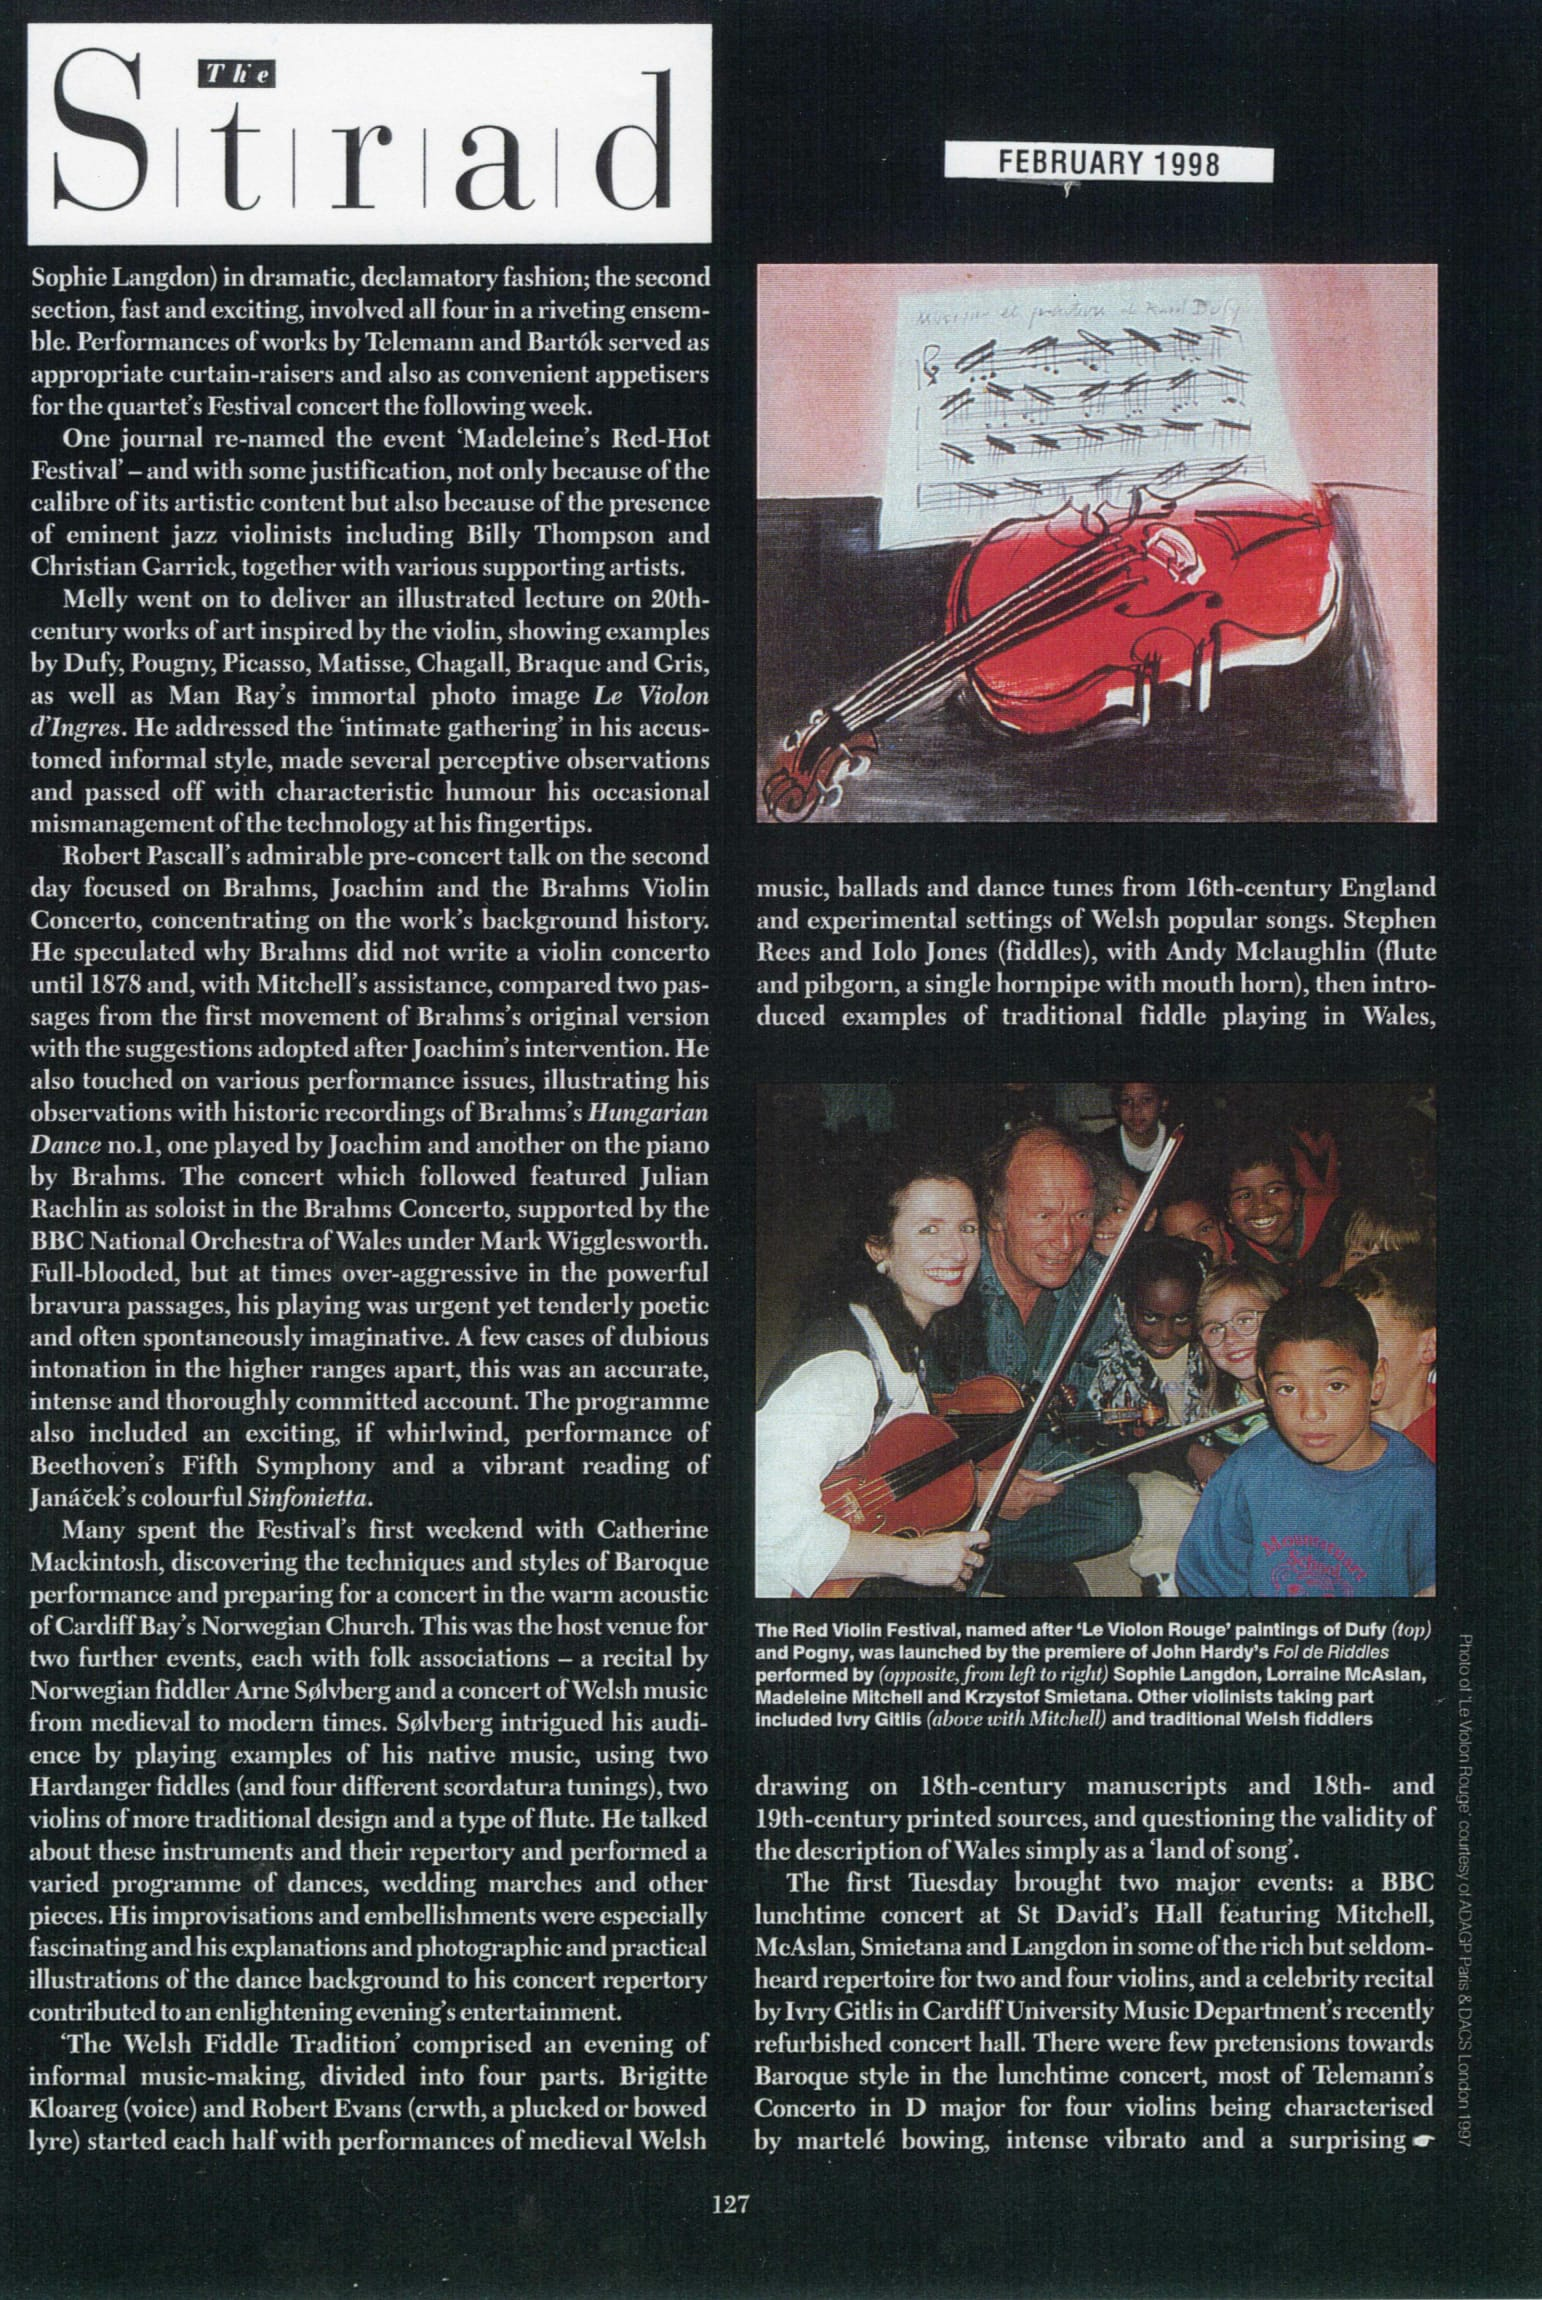 The Strad – Red Violin festival page 2/3